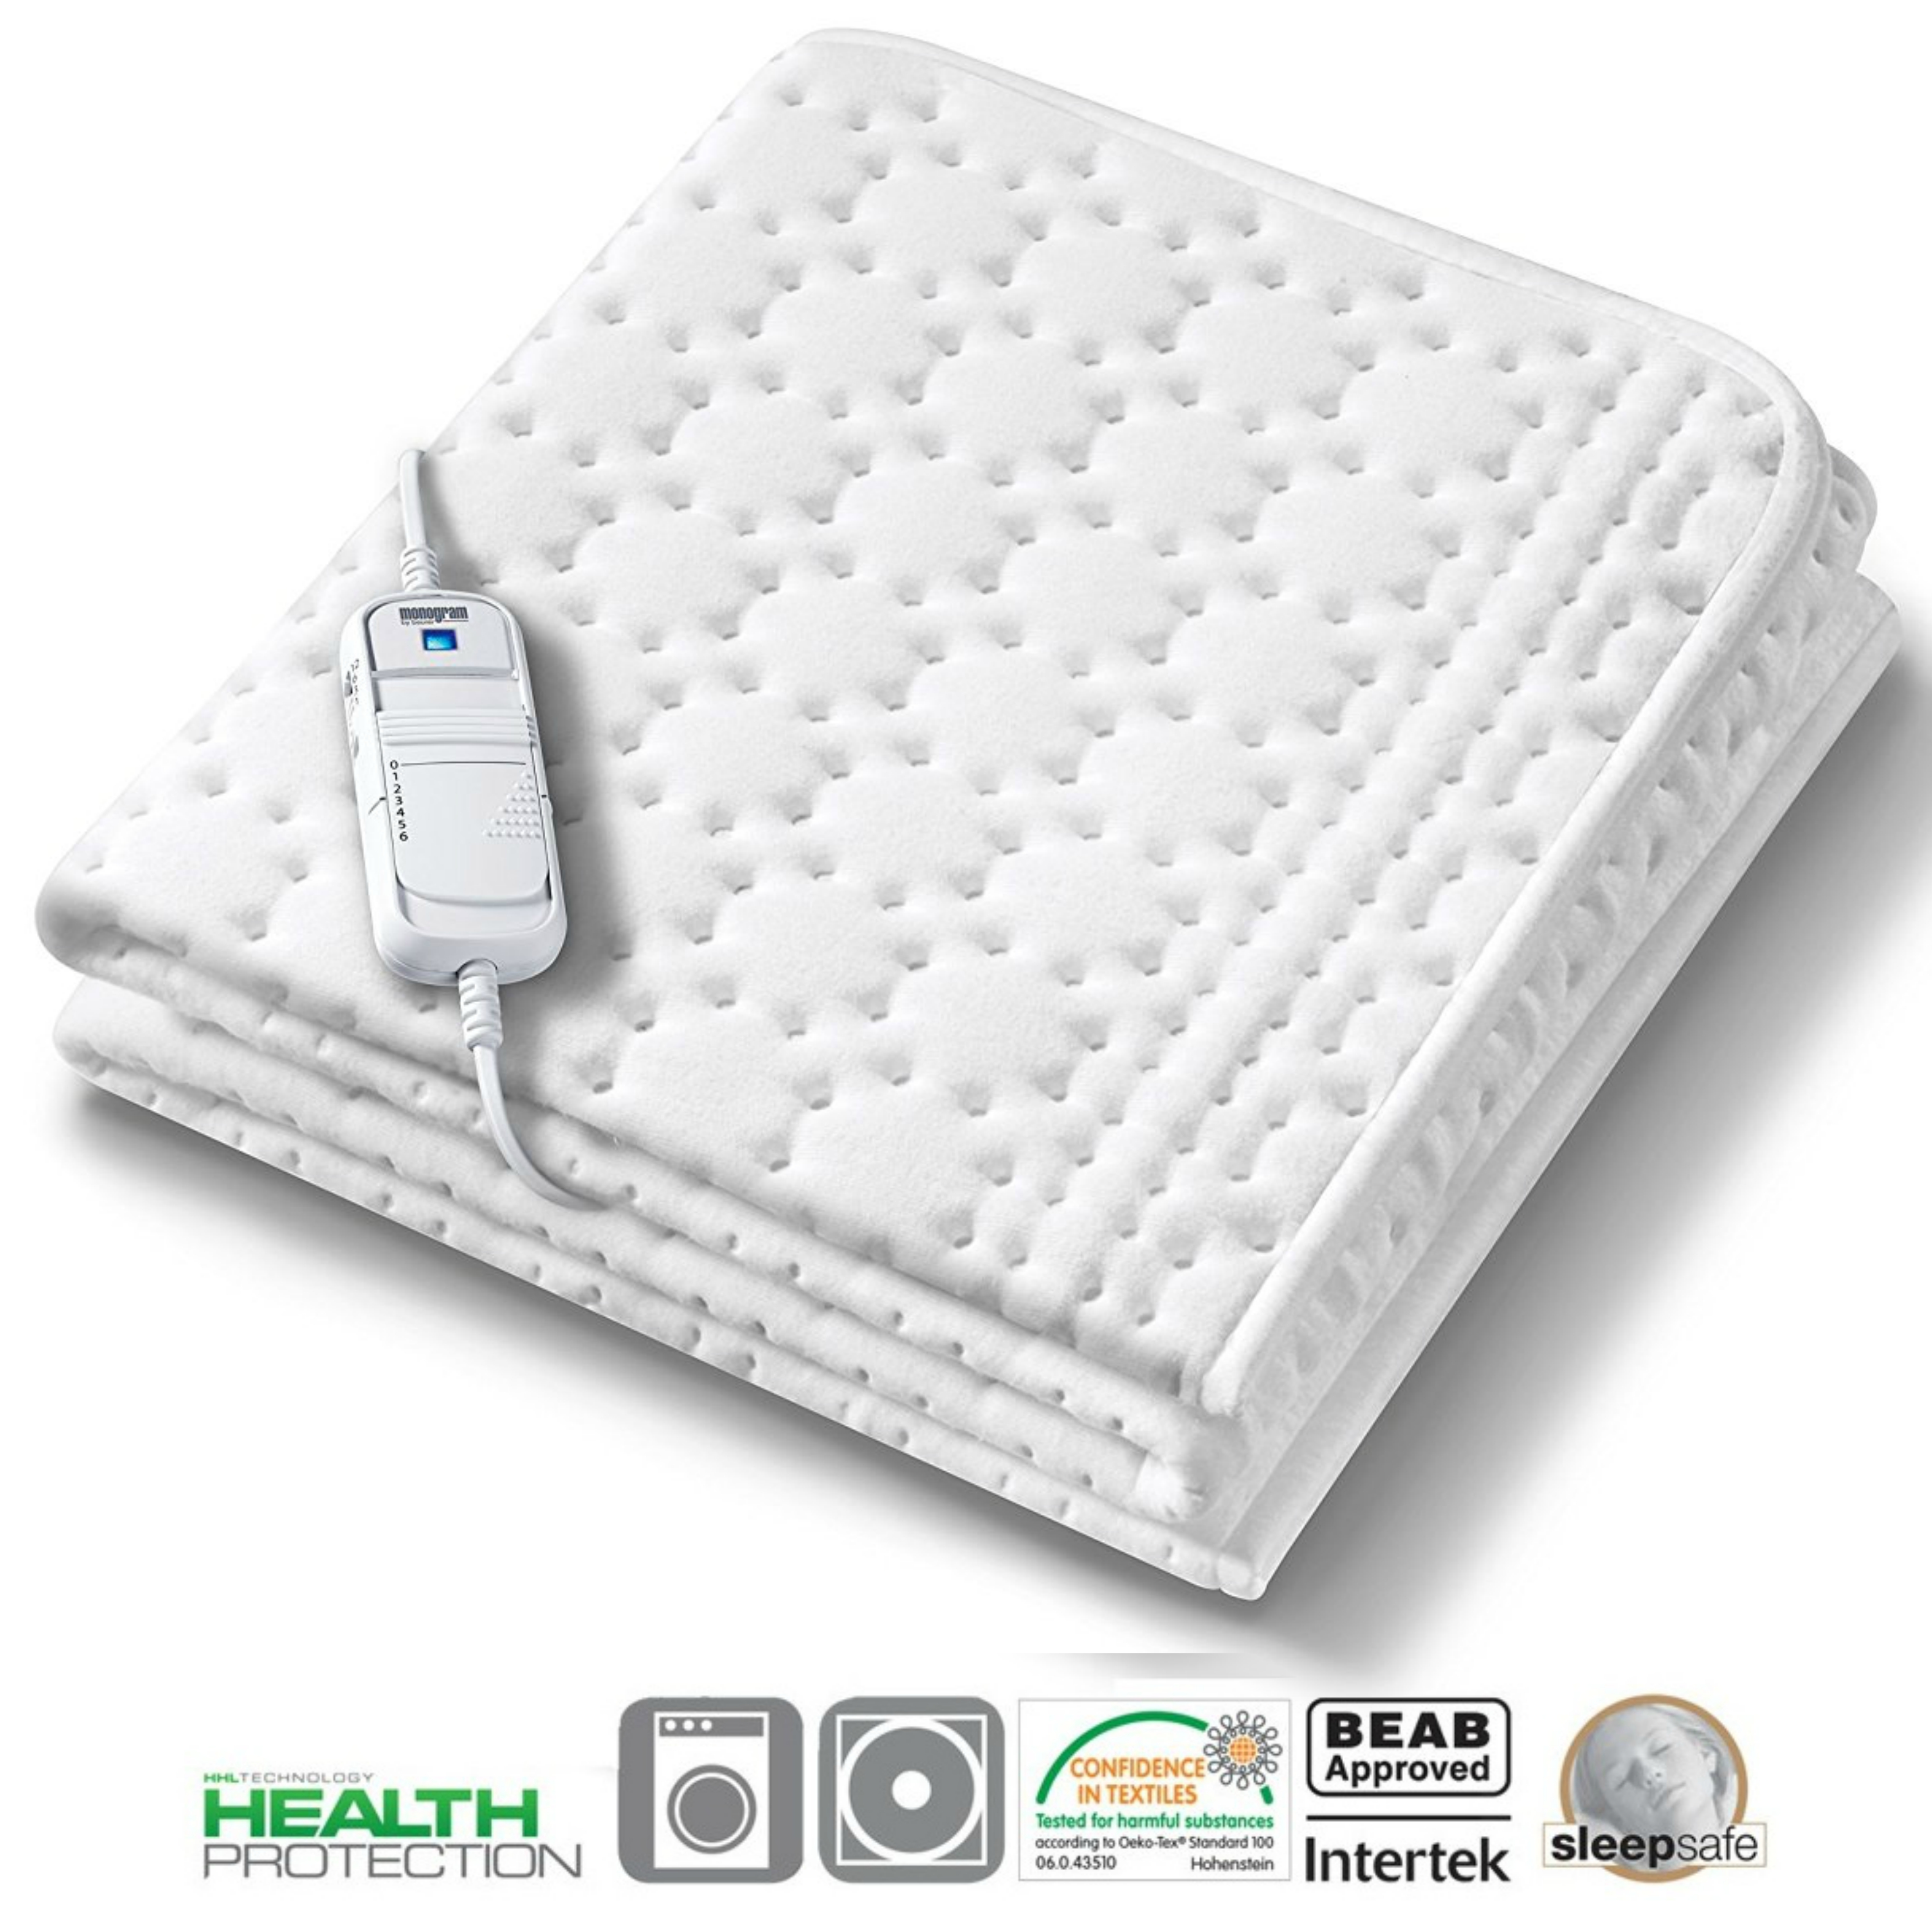 Monogram Allergy-Free Heated Single Mattress Cover (369.60) | HHL Technology | MONAS